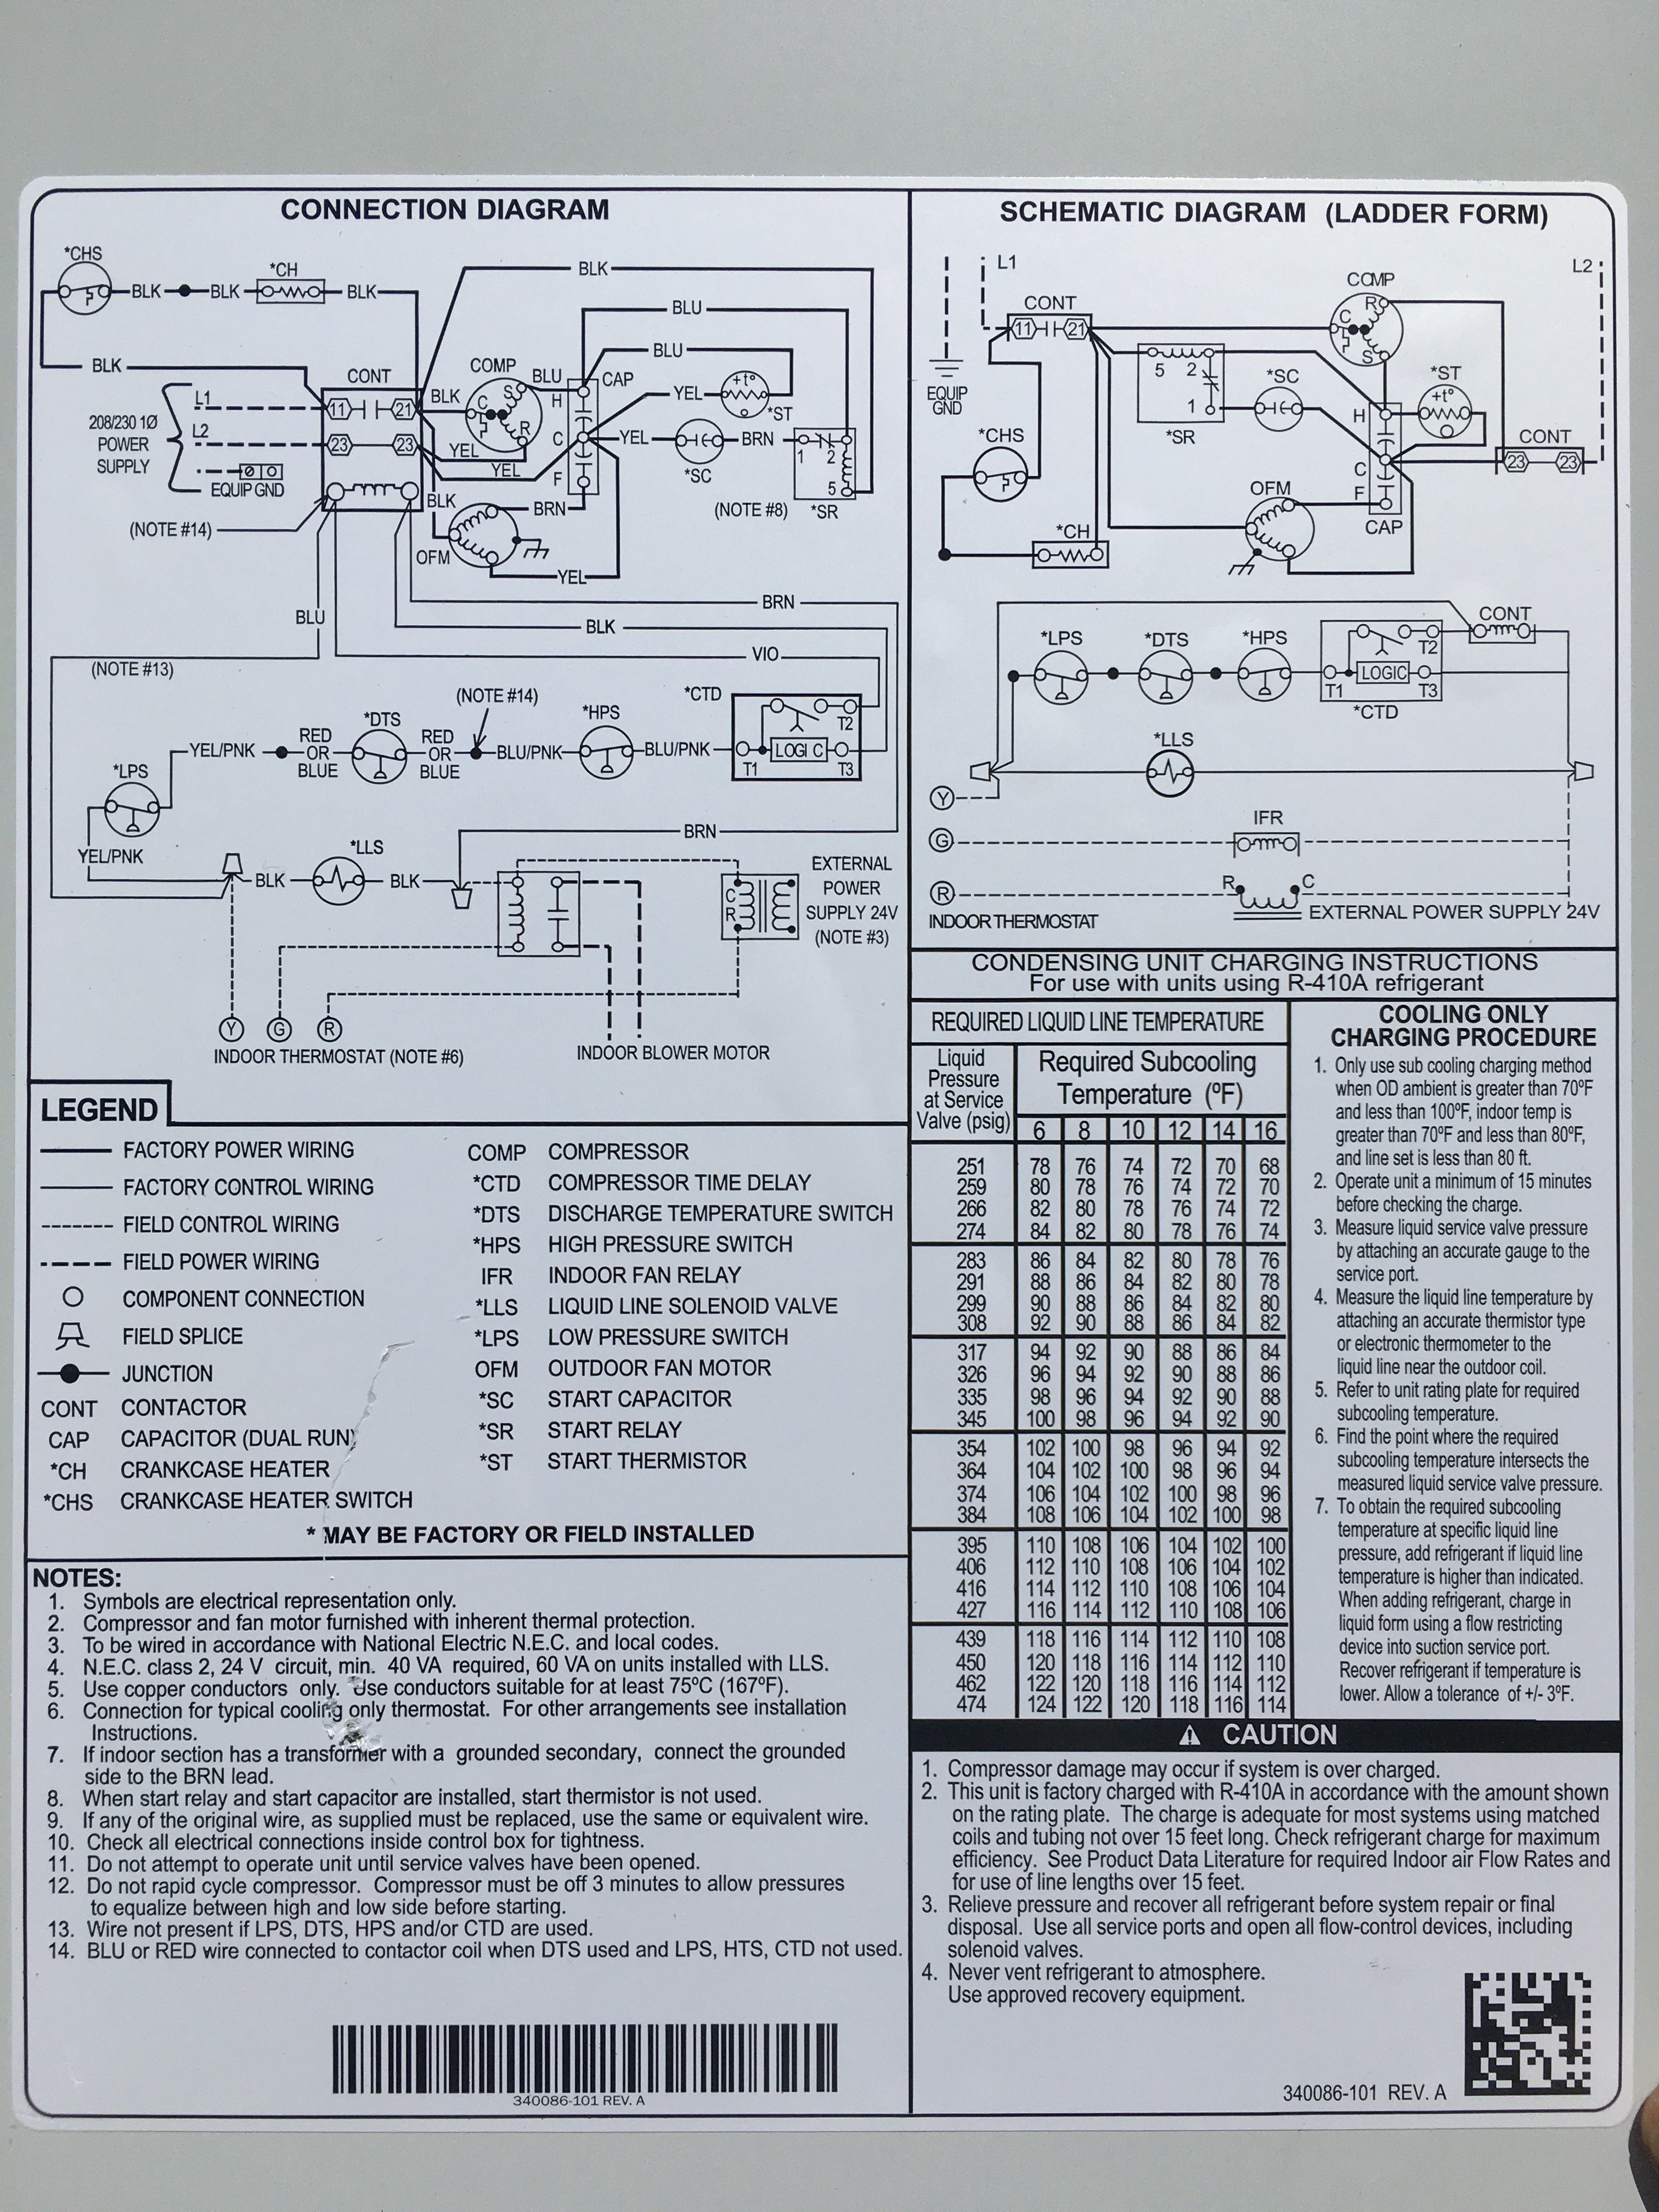 I Have A Payne Ac Unit And A Carrier Air Handler  They Were Installed Prior To New Electrical